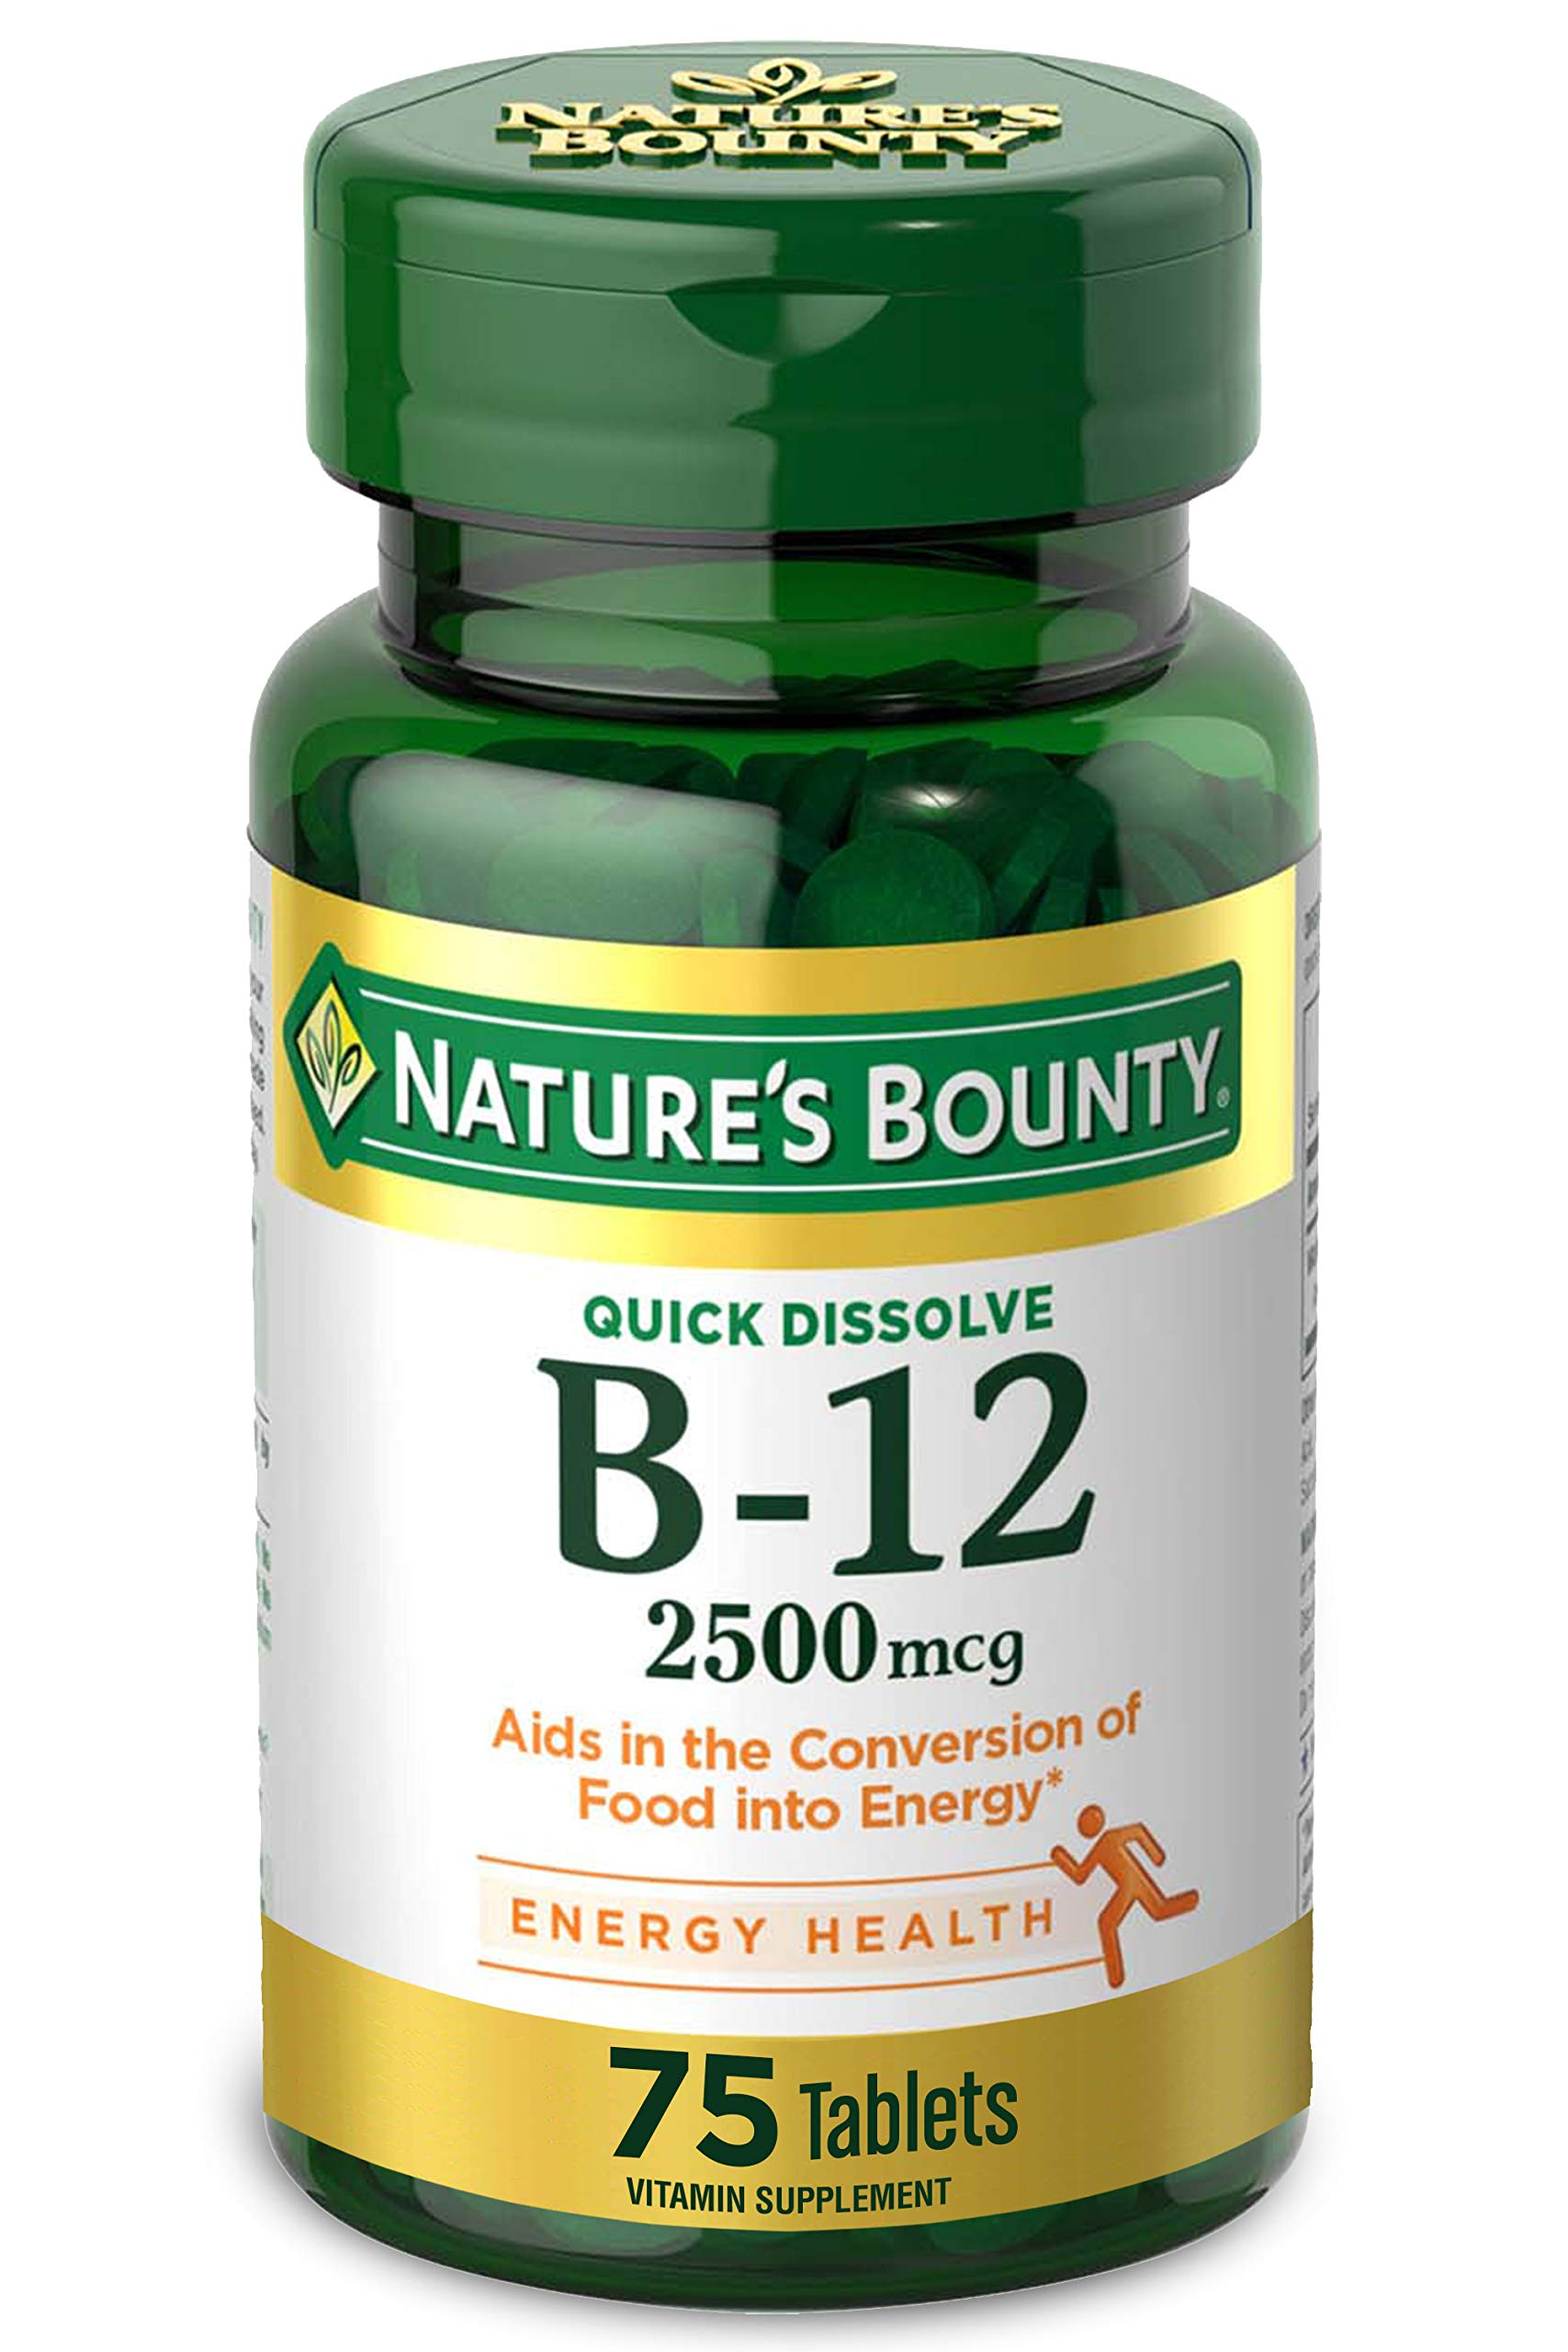 Nature's Bounty 2500mcg, 75 Tablets